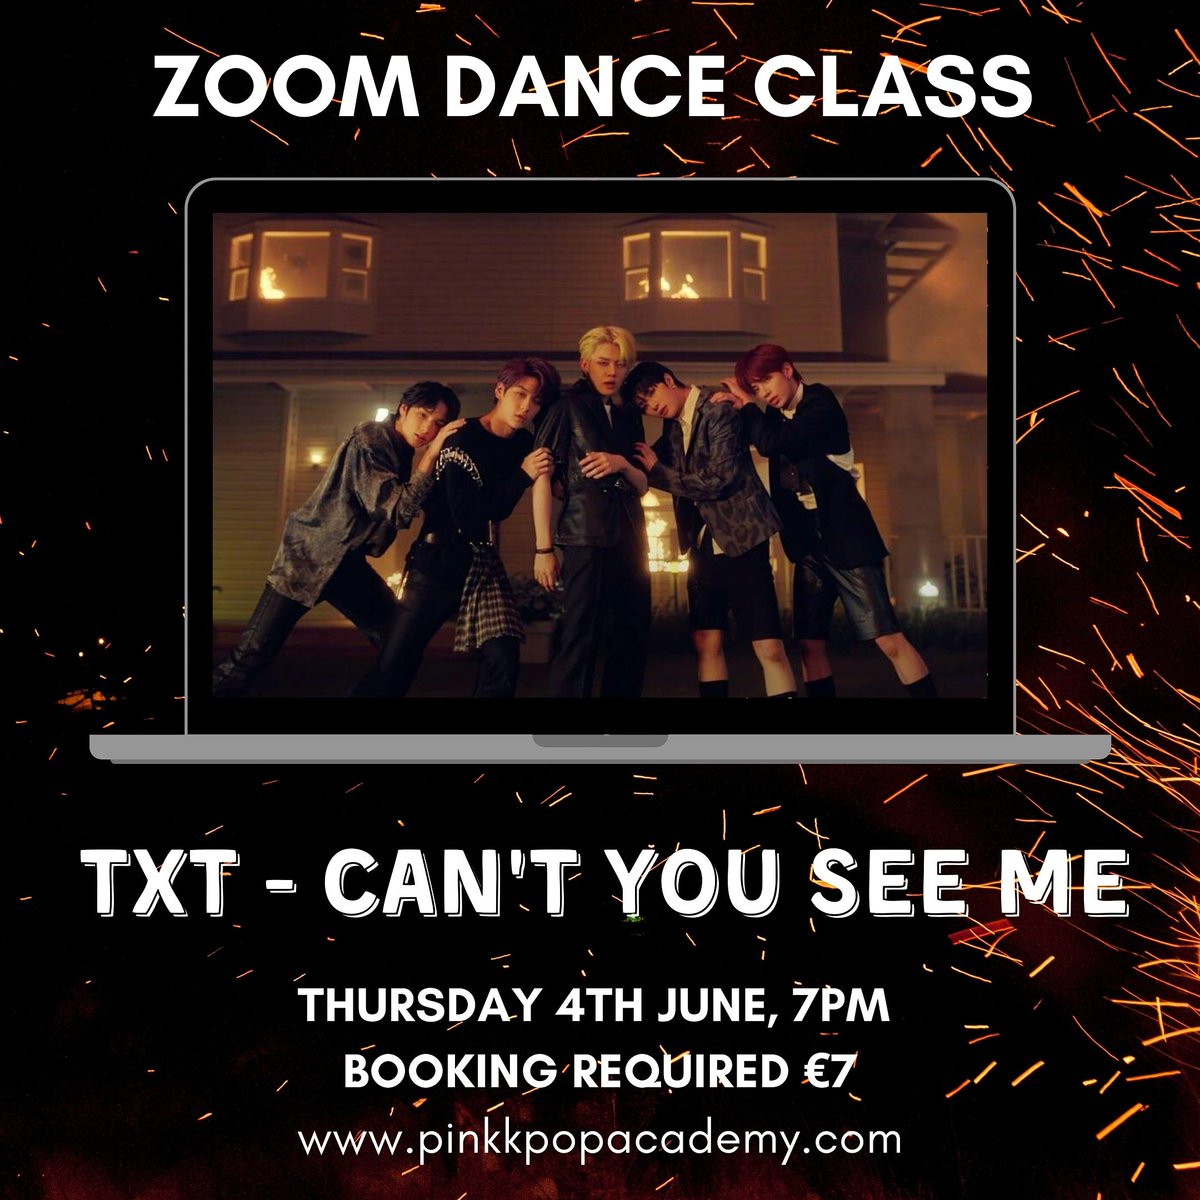 This week at Pink K-Pop Academy!  TXT: Thursday 4th 7pm Oh My Girl: Friday 5th 7pm Book here: http://www.pinkkpopacademy.com/book-online    #kpop #txt #cantyouseeme #ohmygirl #nonstop #kpopdance #kpopclass #kpoptutorial #danceclass #onlineclass #zoomclasspic.twitter.com/k0QaPTZqHM